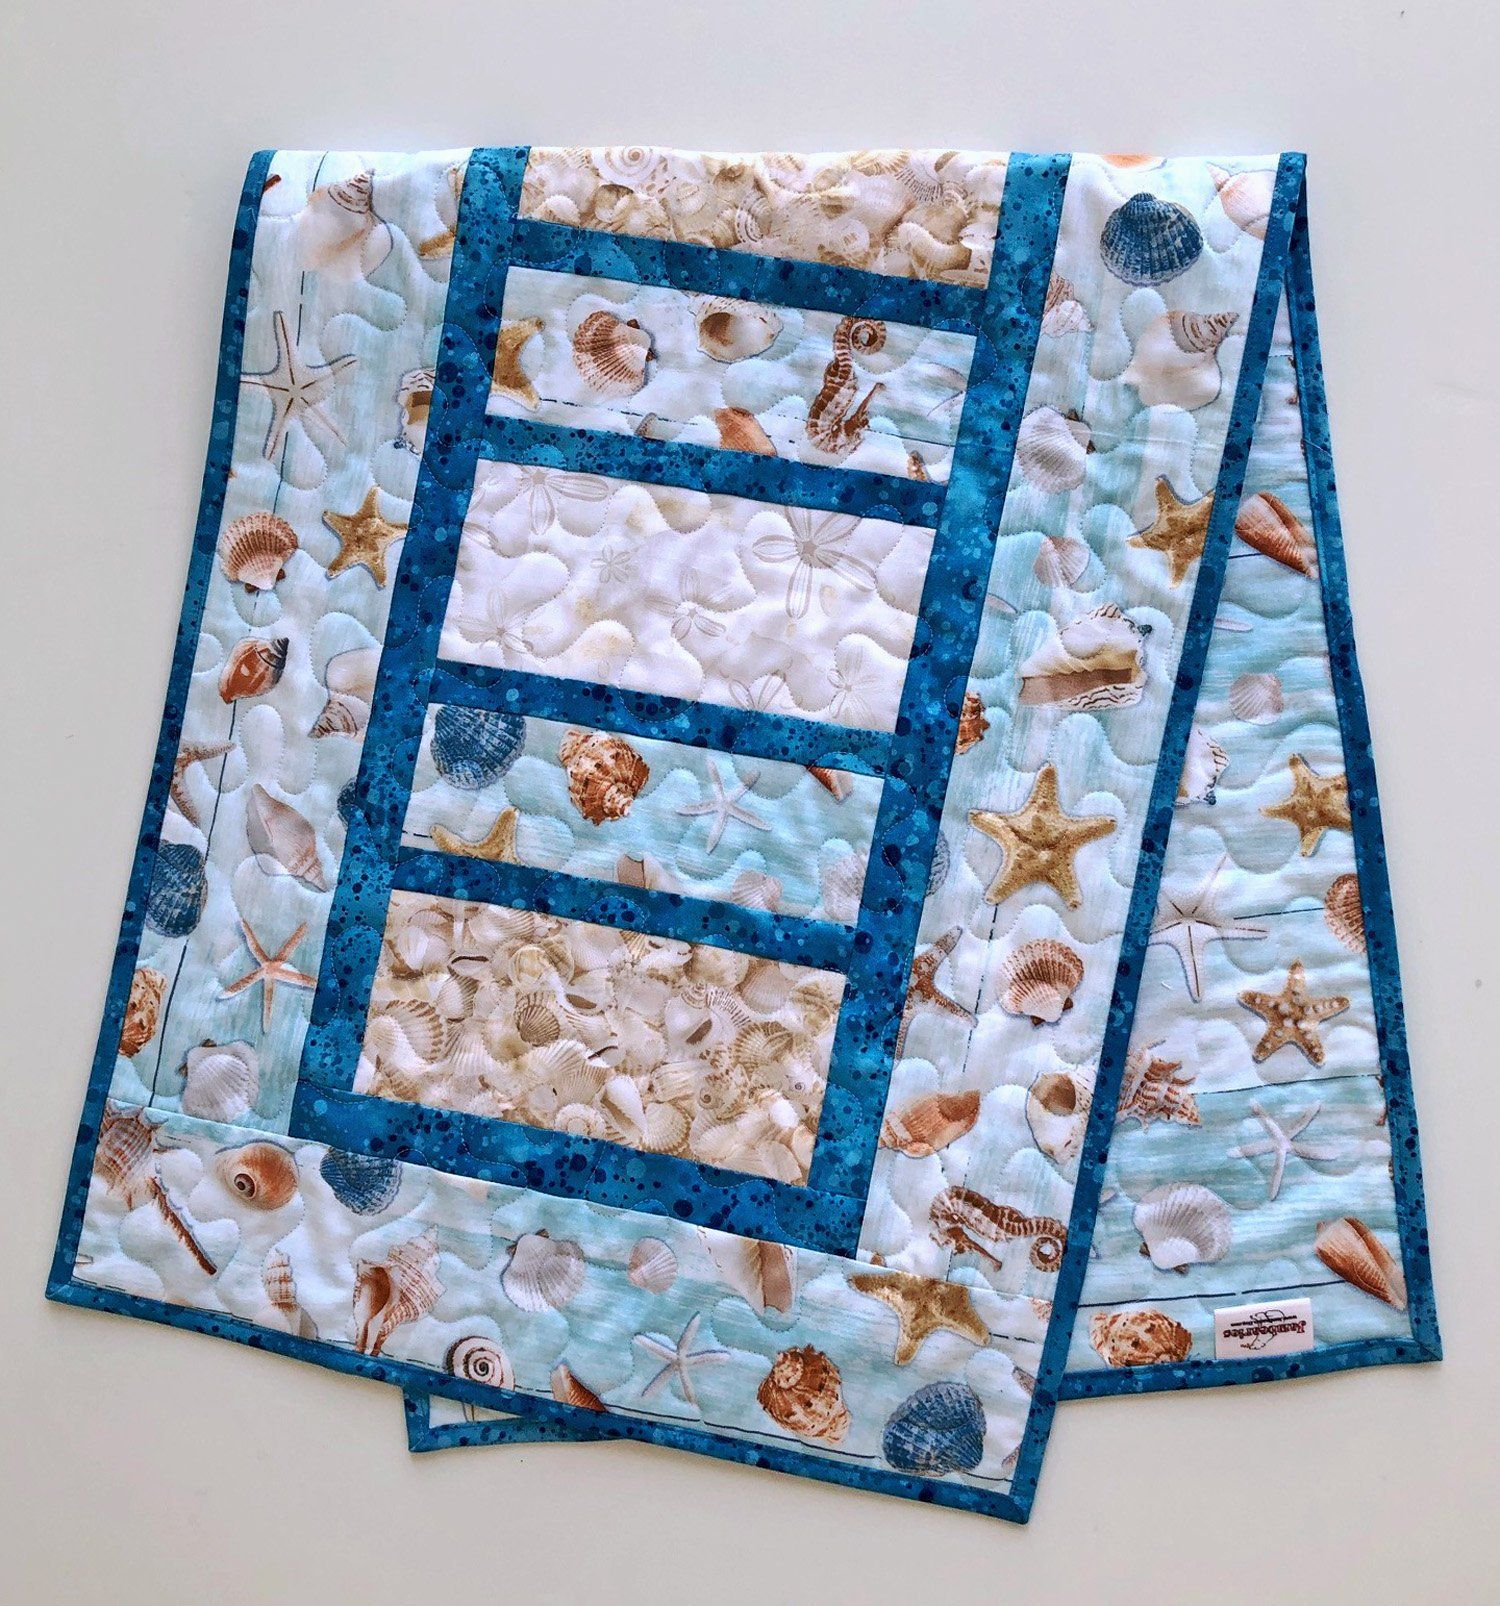 Beach Themed Quilted Table Runner 16 75 X 42 Etsy Beach Themed Quilts Table Quilts Quilted Table Runners